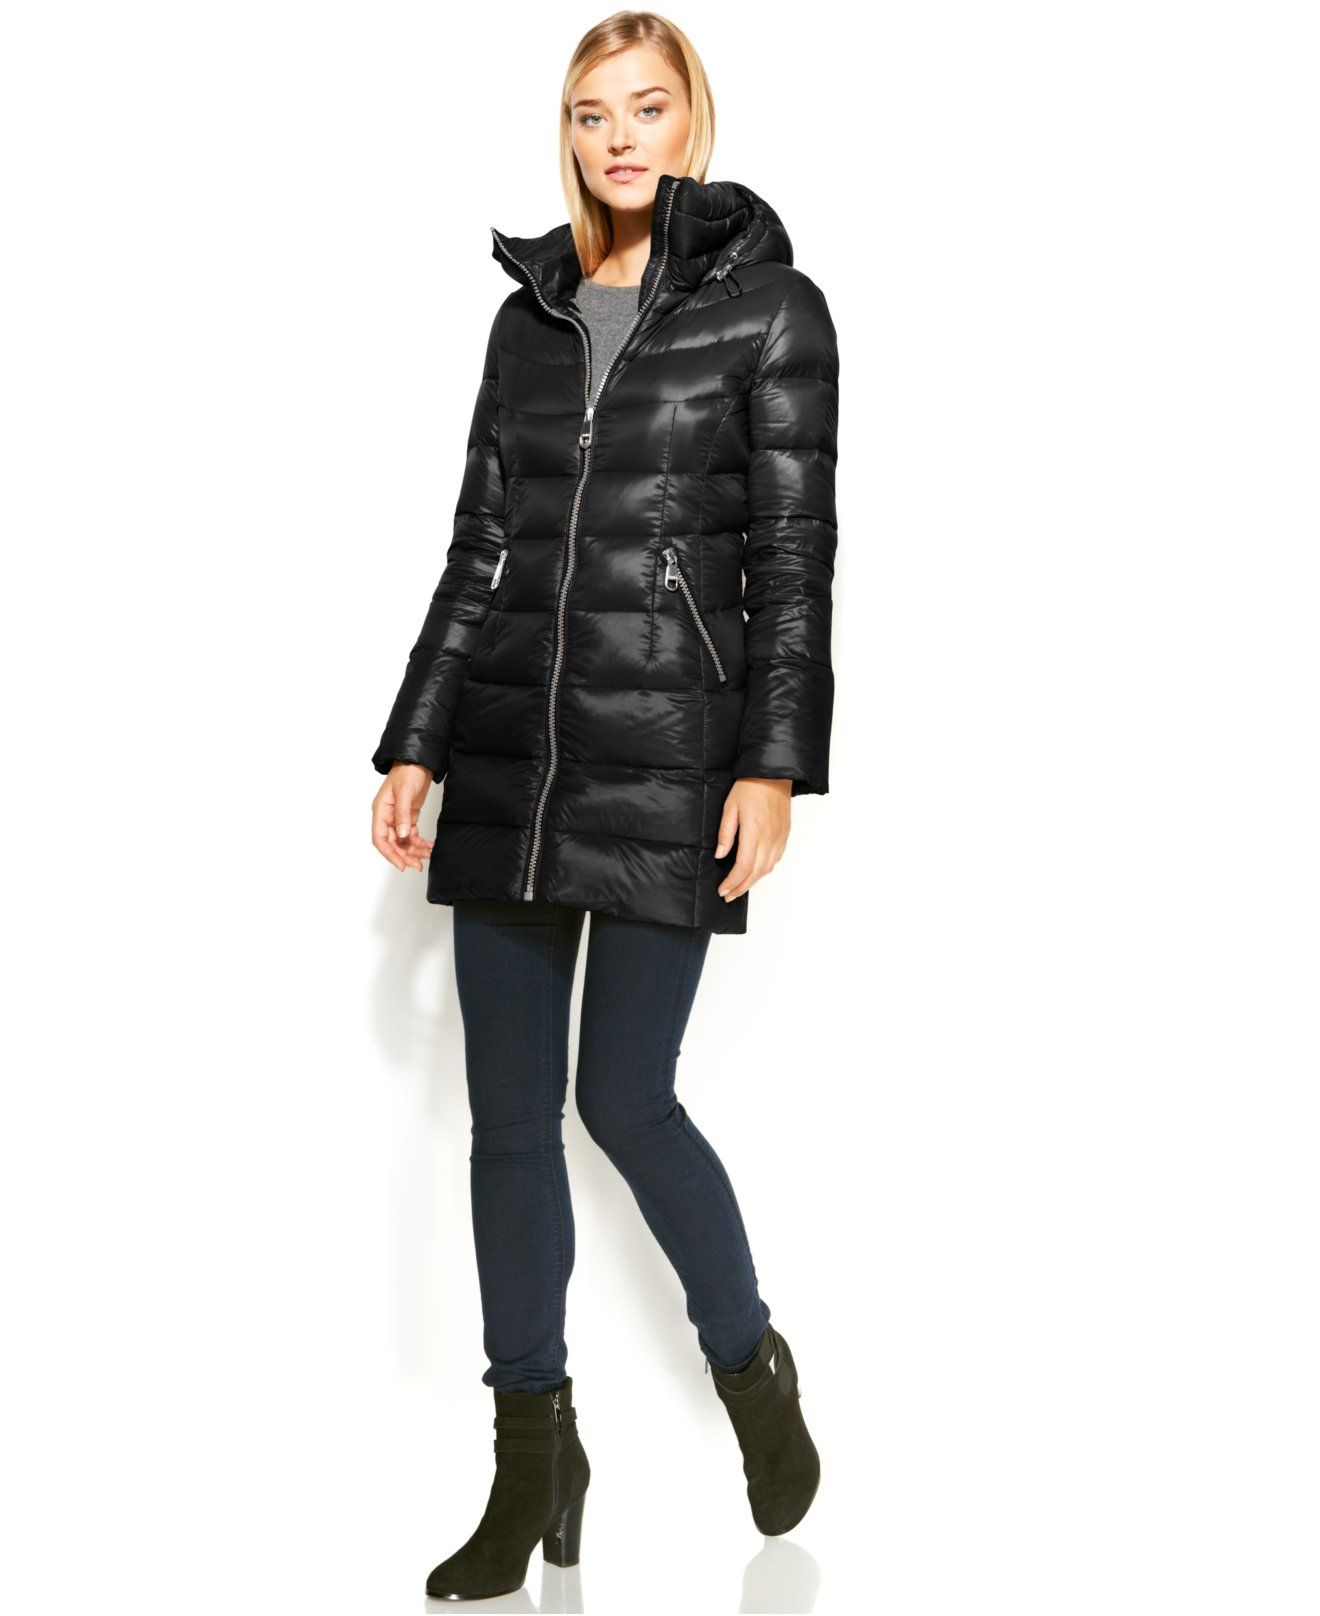 28982516cea0 Calvin Klein Hooded Quilted Packable Down Puffer Coat - Coats - Women -  Macy's